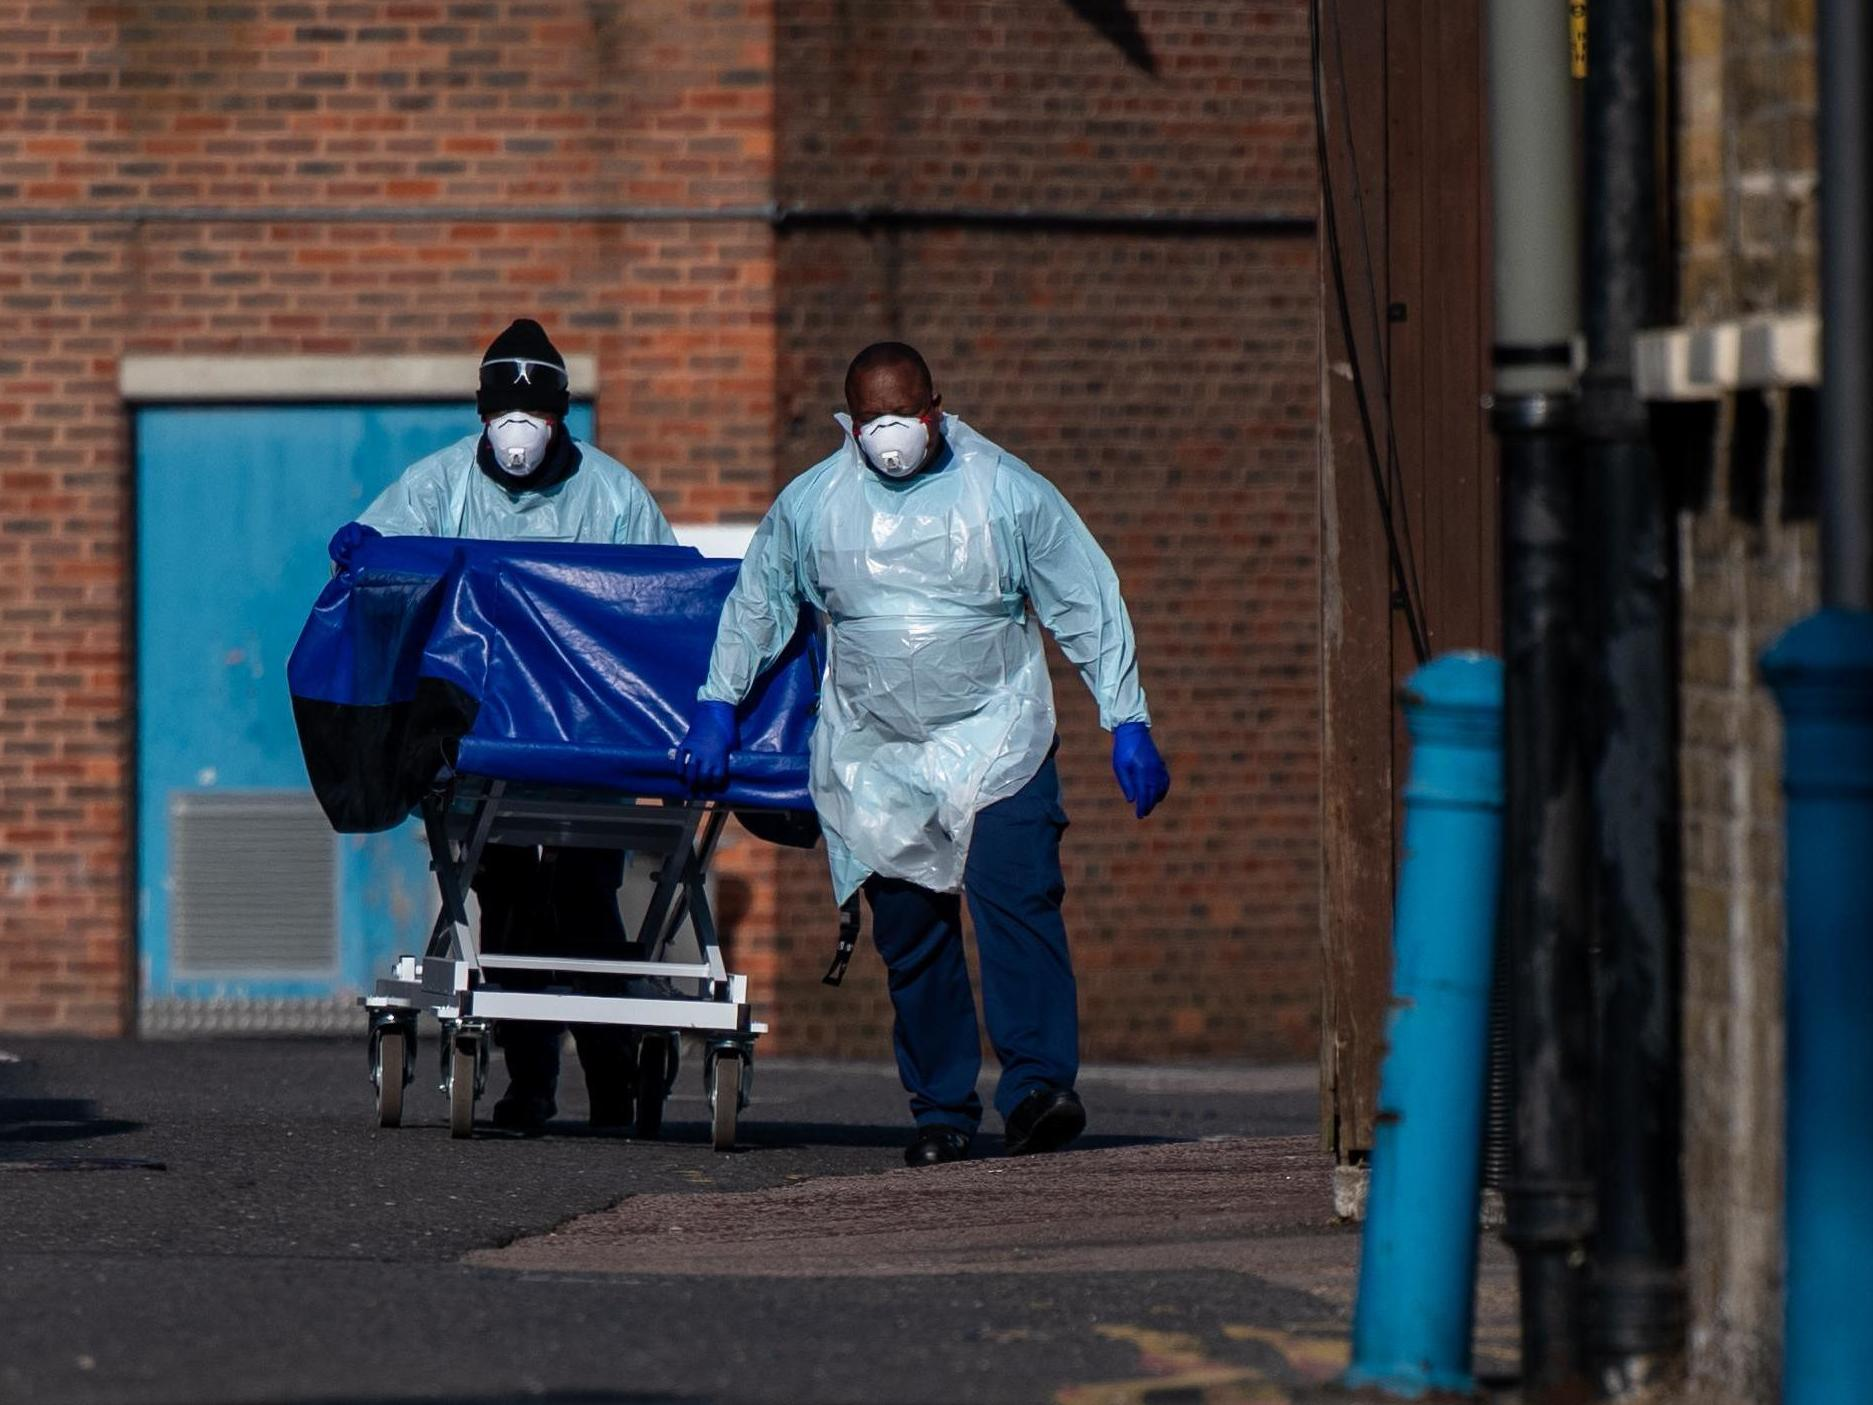 Coronavirus: UK death toll rises by 160 to 34,796 - The Independent